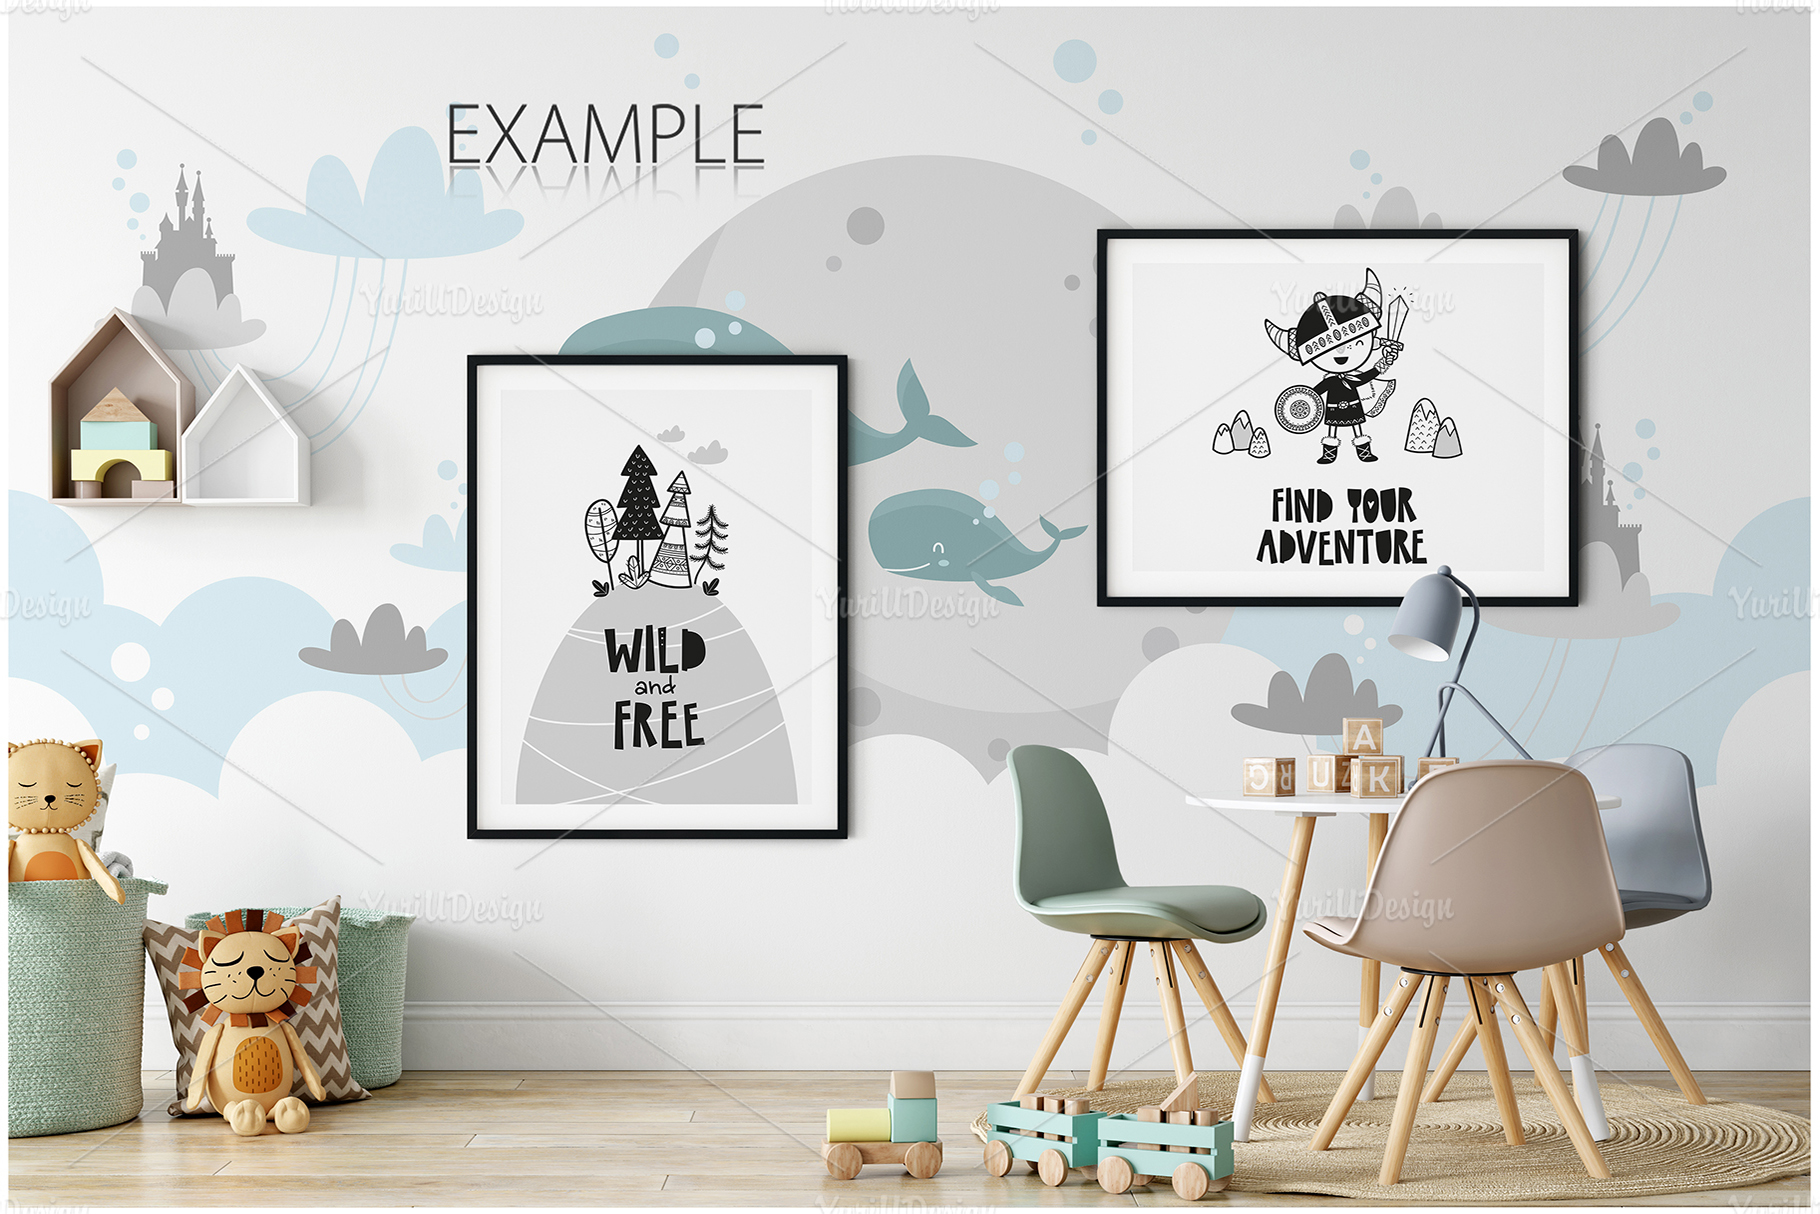 Kids Frames & Wall Mockup Bundle - 5 example image 5